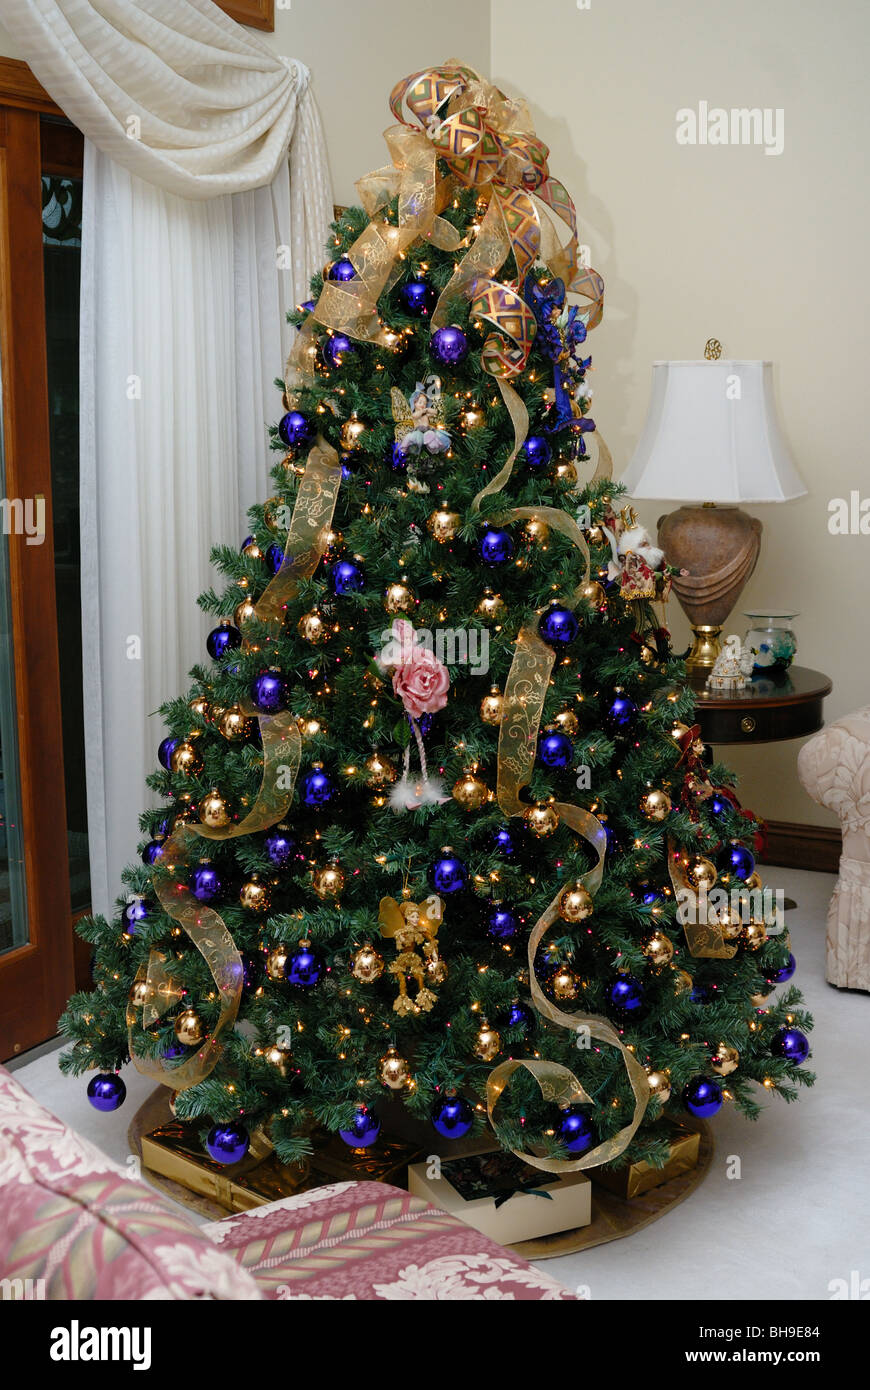 An elegant Christmas tree decorated with gold and blue